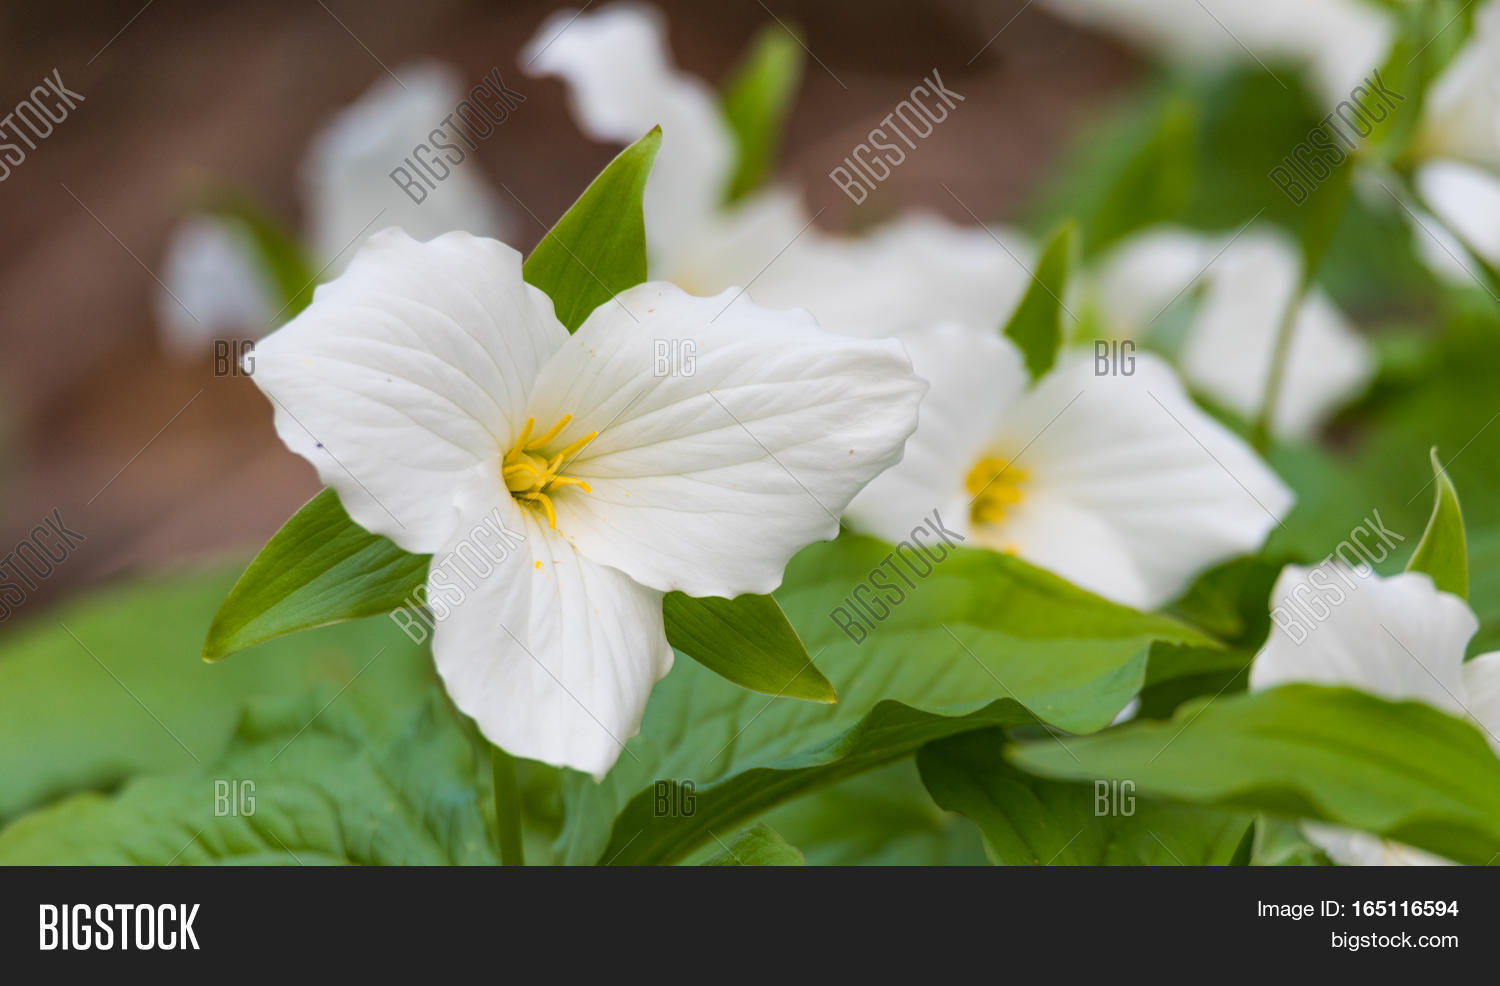 White Petals Large Image Photo Free Trial Bigstock